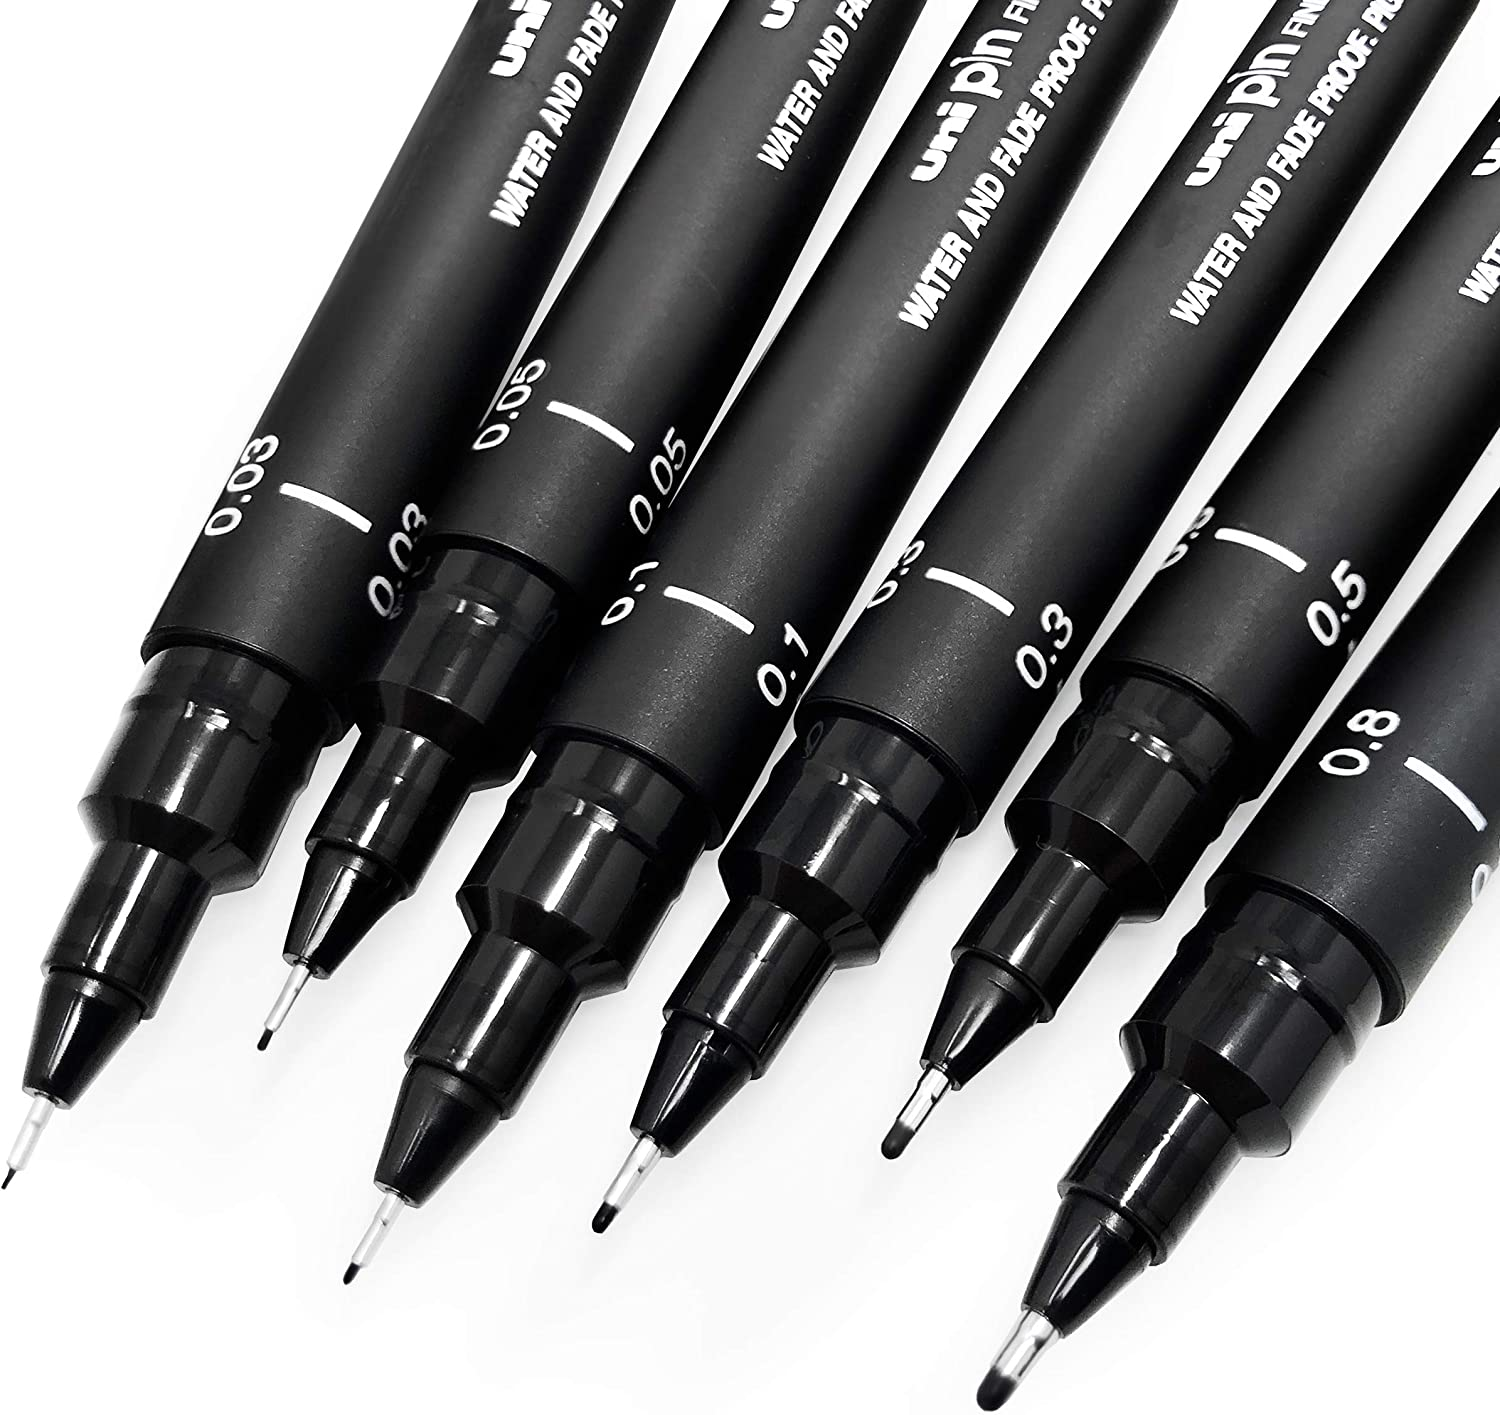 Uni Pin Fineliner Drawing Pen - Sketching Set - Black Ink - 0.03 to 0.8mm - Set of 6